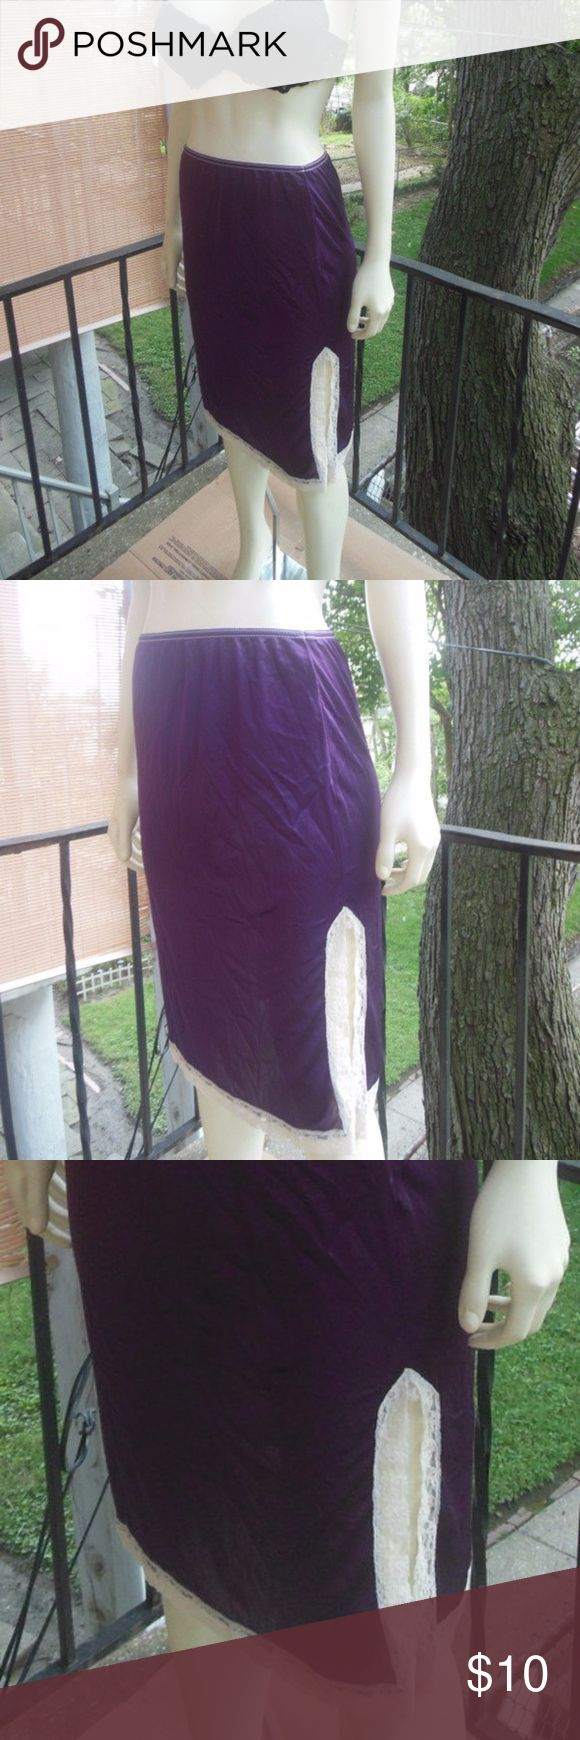 "Purple Slip Skirt Elastic waist poly slip with off center lace vent.  VGUC  Unstretched:  22"" waist  21"" length Vintage Intimates & Sleepwear Chemises & Slips"